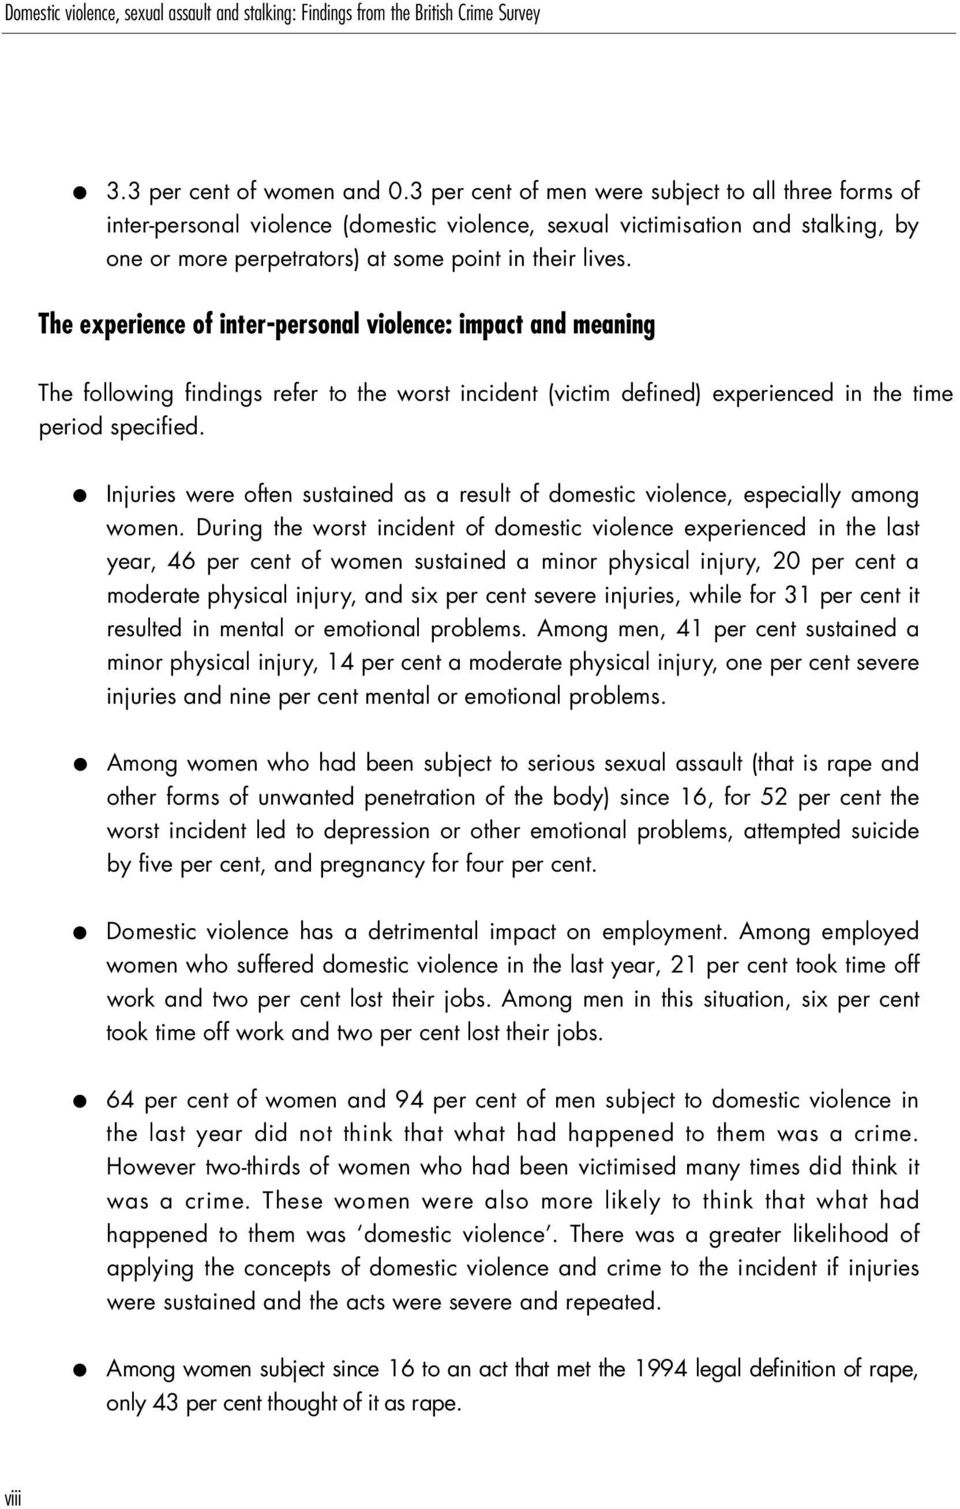 The experience of inter-personal violence: impact and meaning The following findings refer to the worst incident (victim defined) experienced in the time period specified.